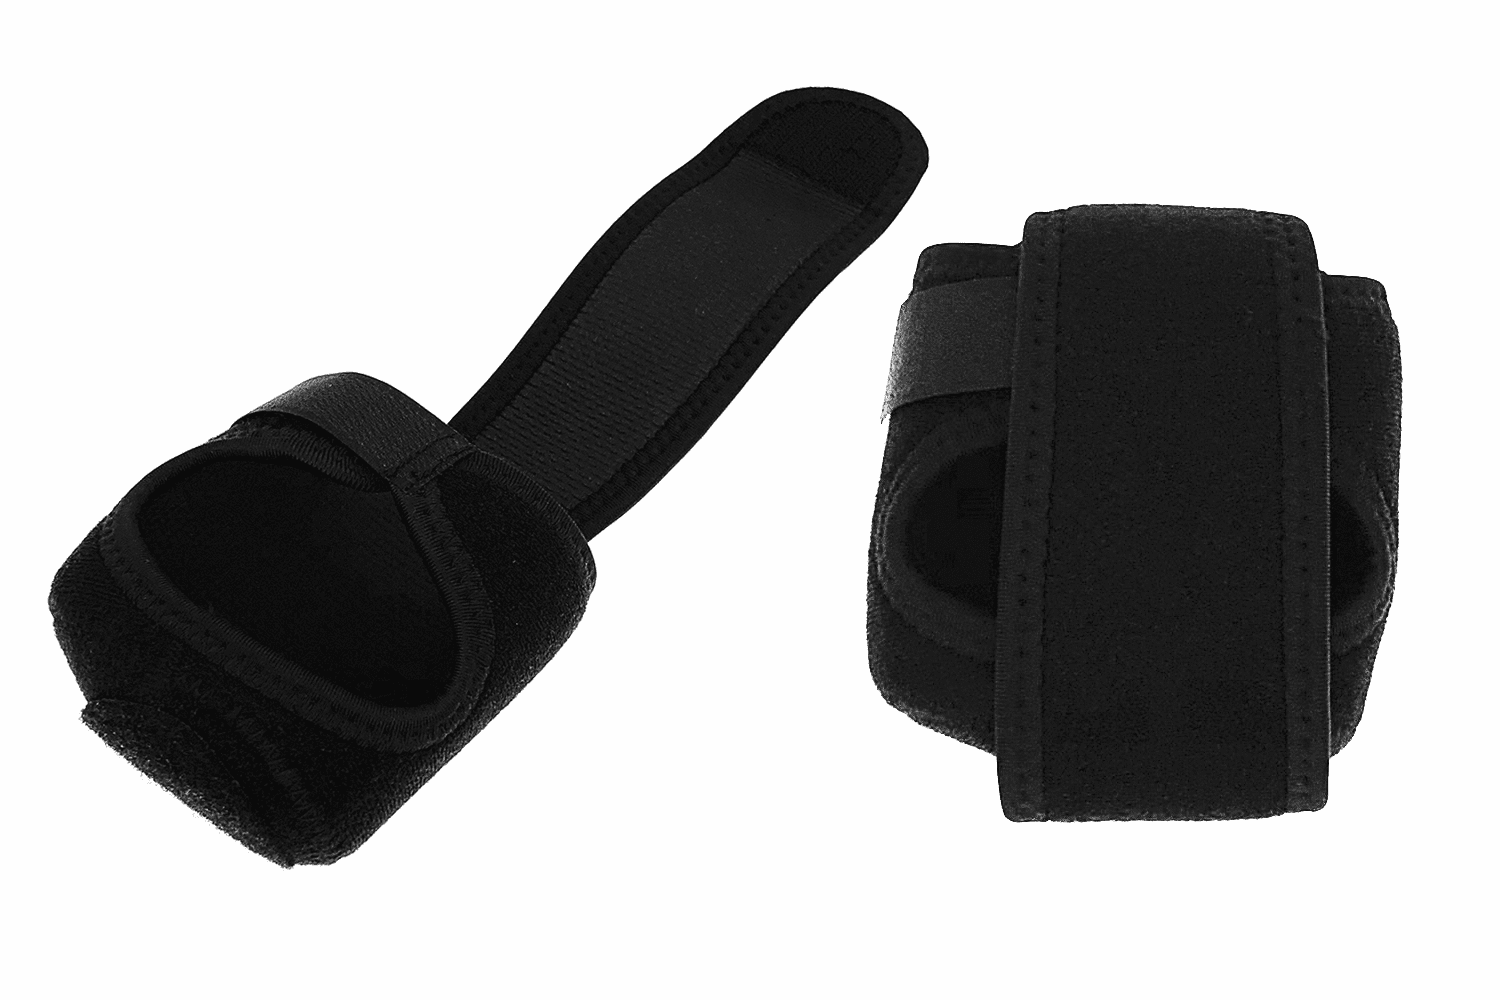 Baitcasting Fishing Reel Protective Case Cover Pouch Bag - Two Pieces